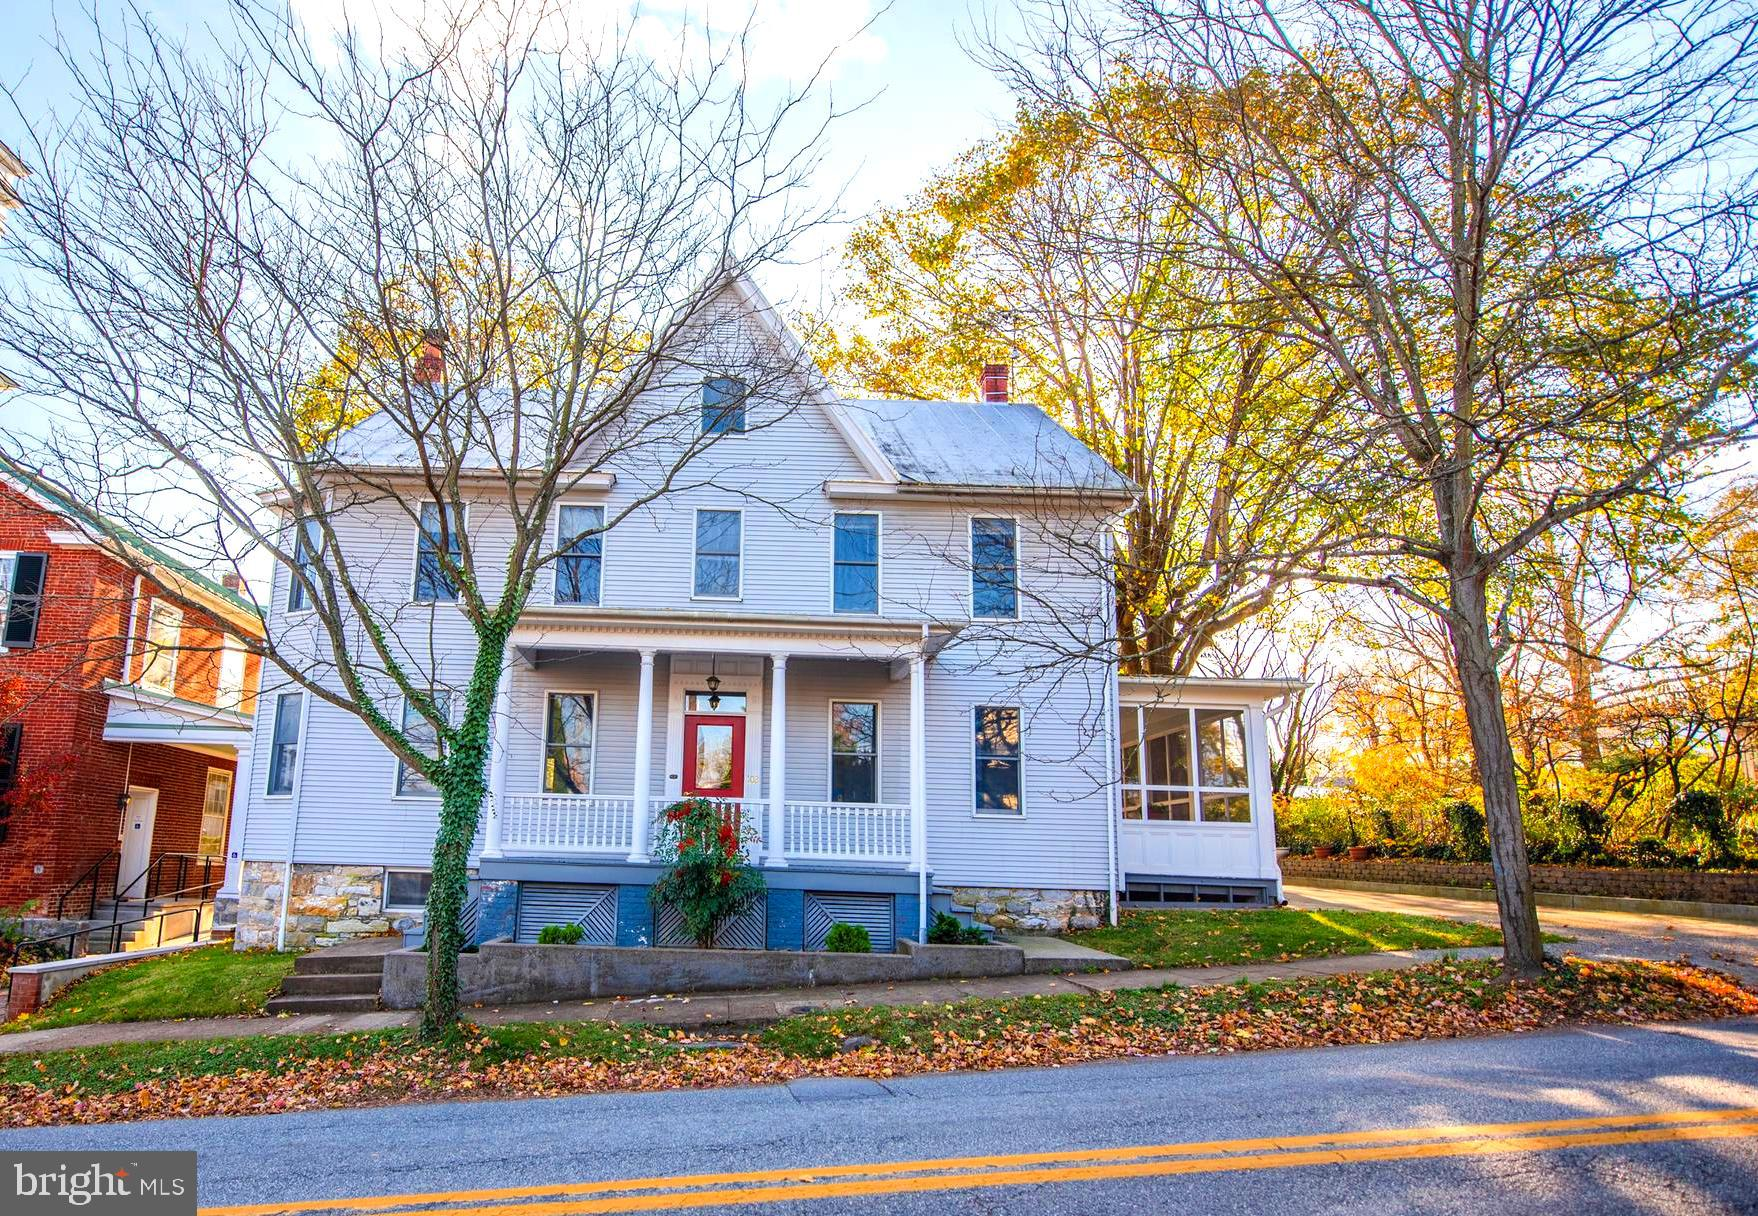 This beautiful two story, five bay German sided home was built in the late 1890's and is located in